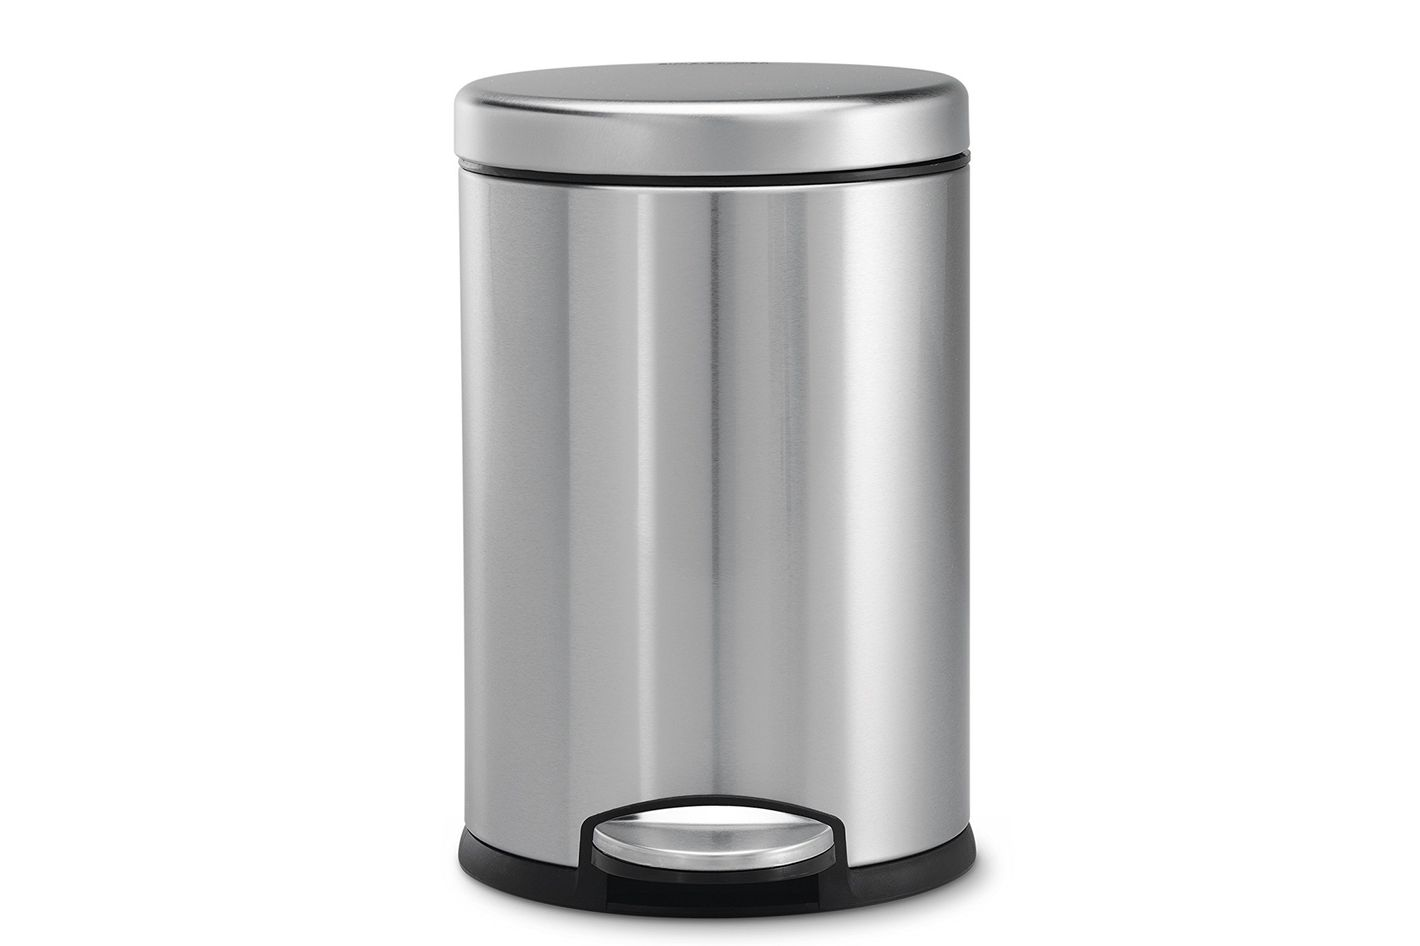 Simplehuman Mini Round Step Trash Can, Stainless Steel, 1.2-Gallon